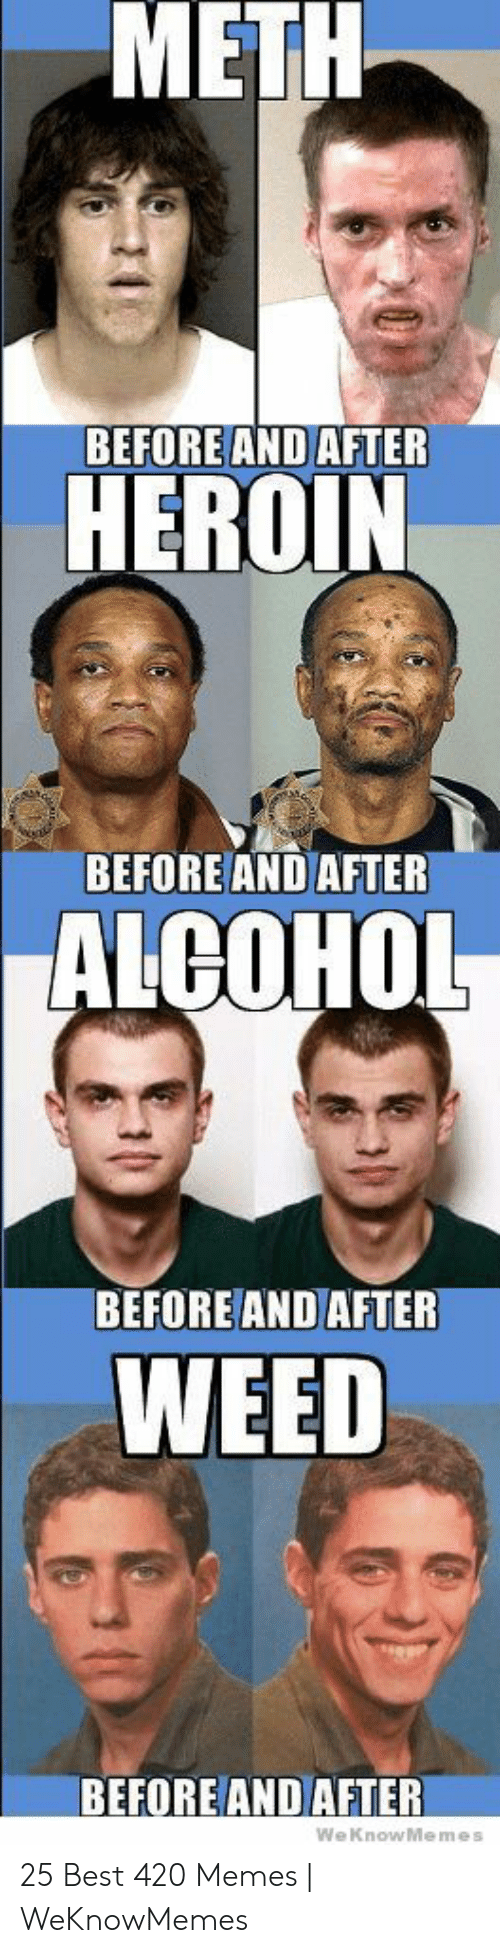 Best 420: METH  BEFORE AND AFTER  HEROIN  BEFOREAND AFTER  ALCOHOL  BEFORE AND AFTER  WEED  BEFORE AND AFTER  We KnowMemes 25 Best 420 Memes | WeKnowMemes